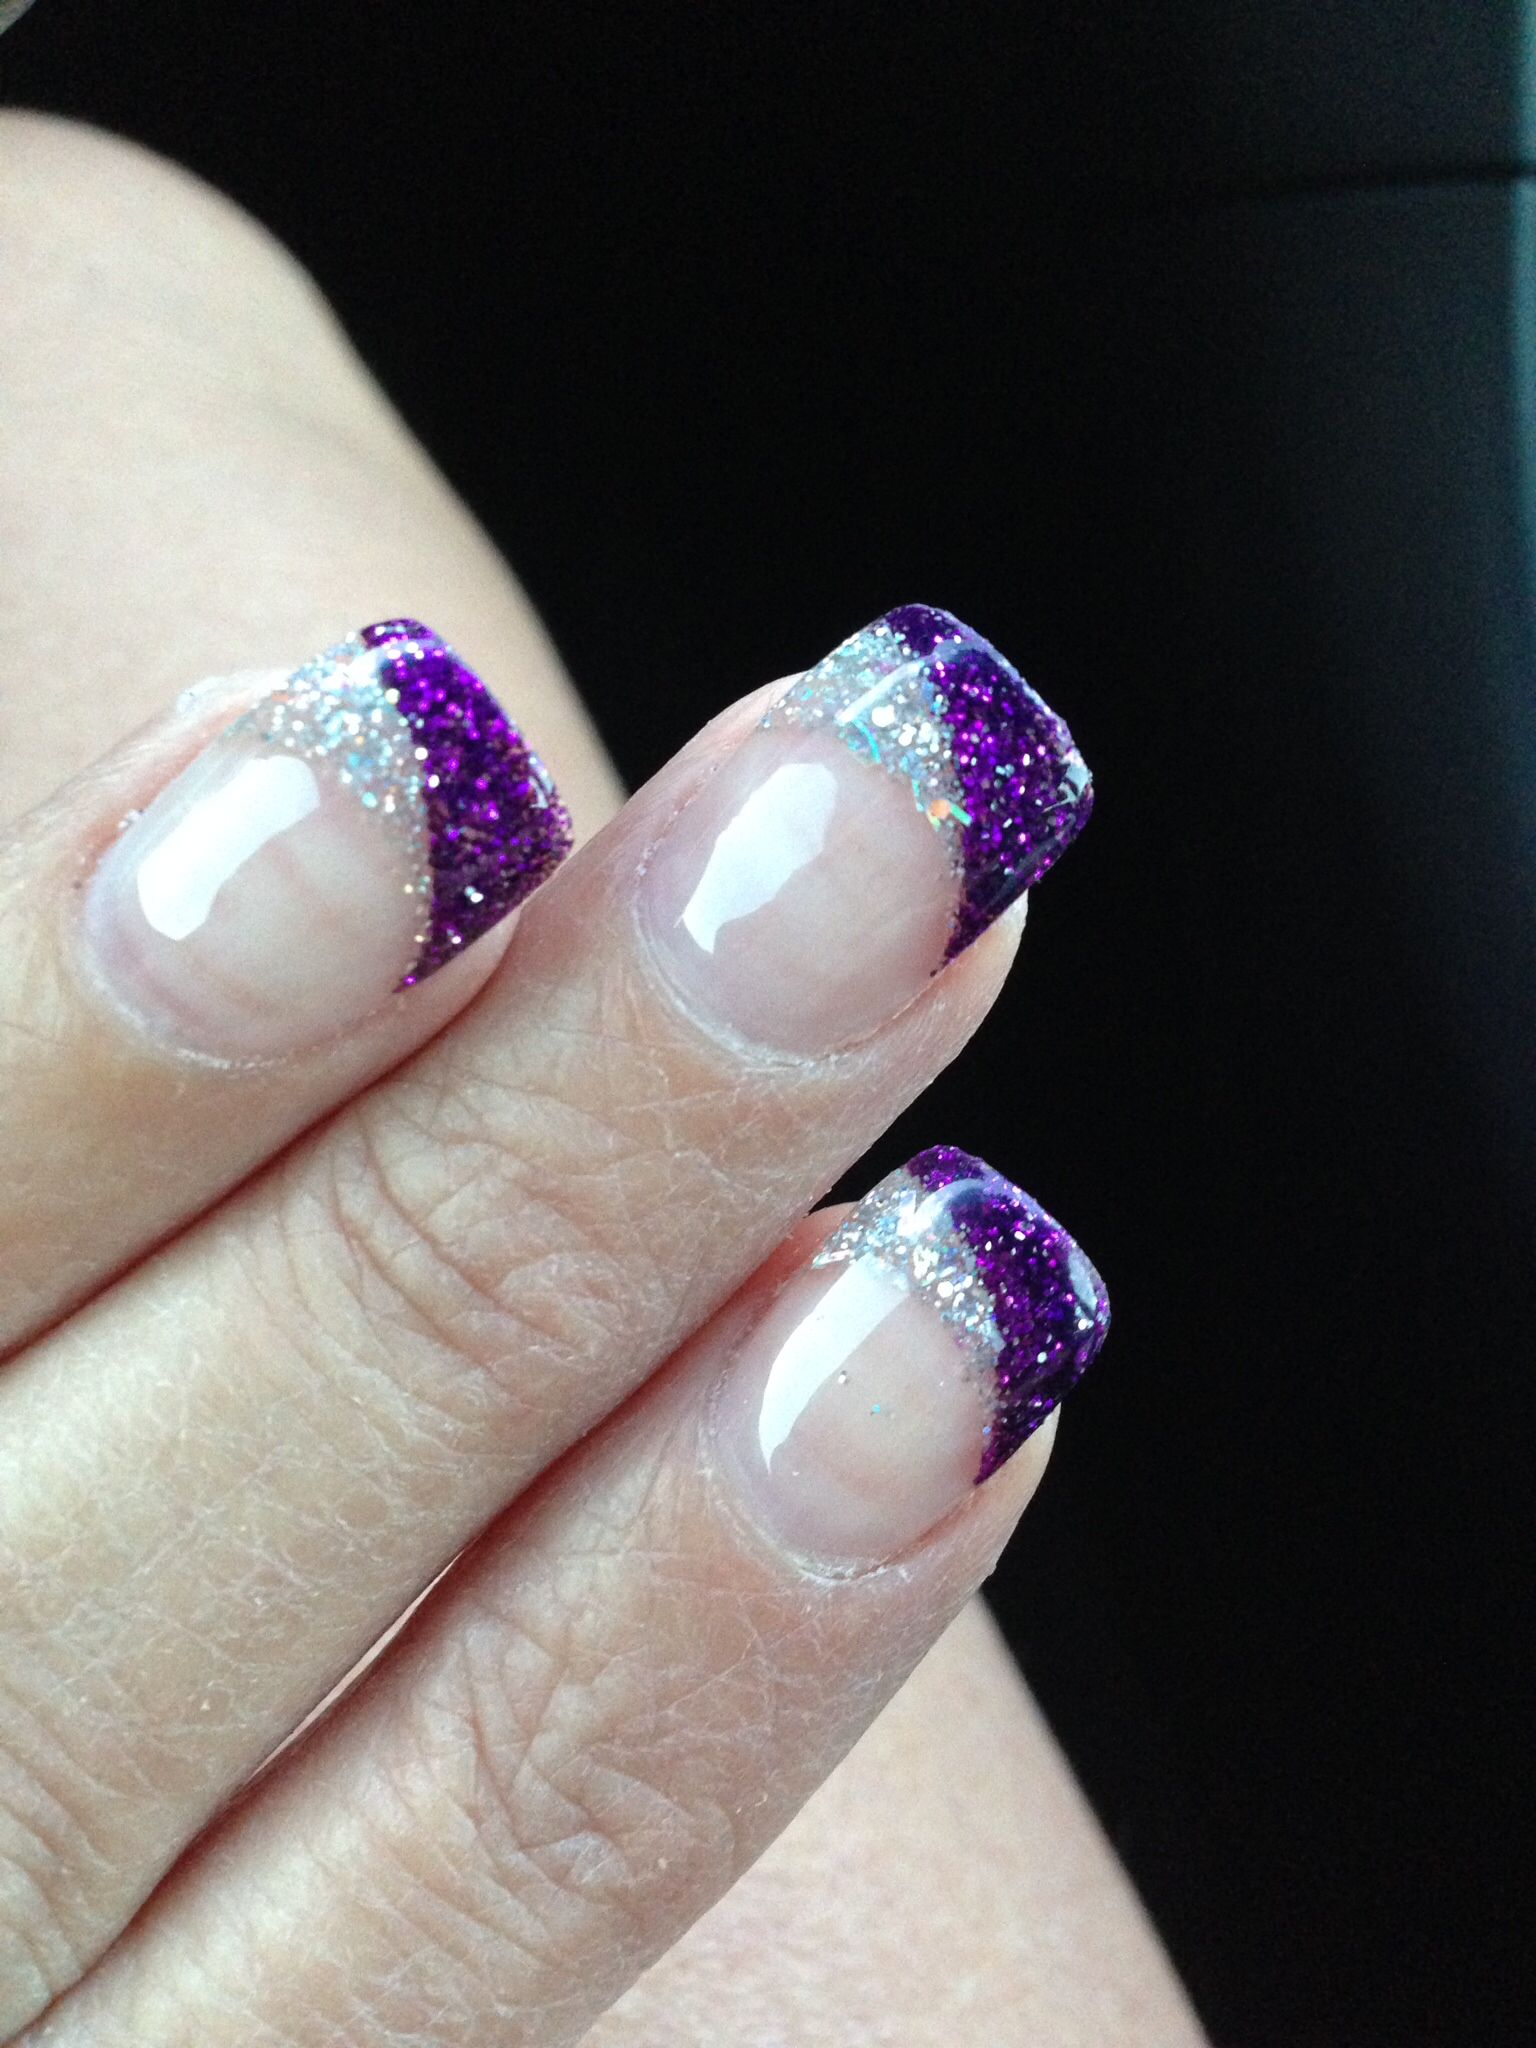 Solar nails. - Solar Nails... Nails Pinterest Solar Nails, Solar And Manicure